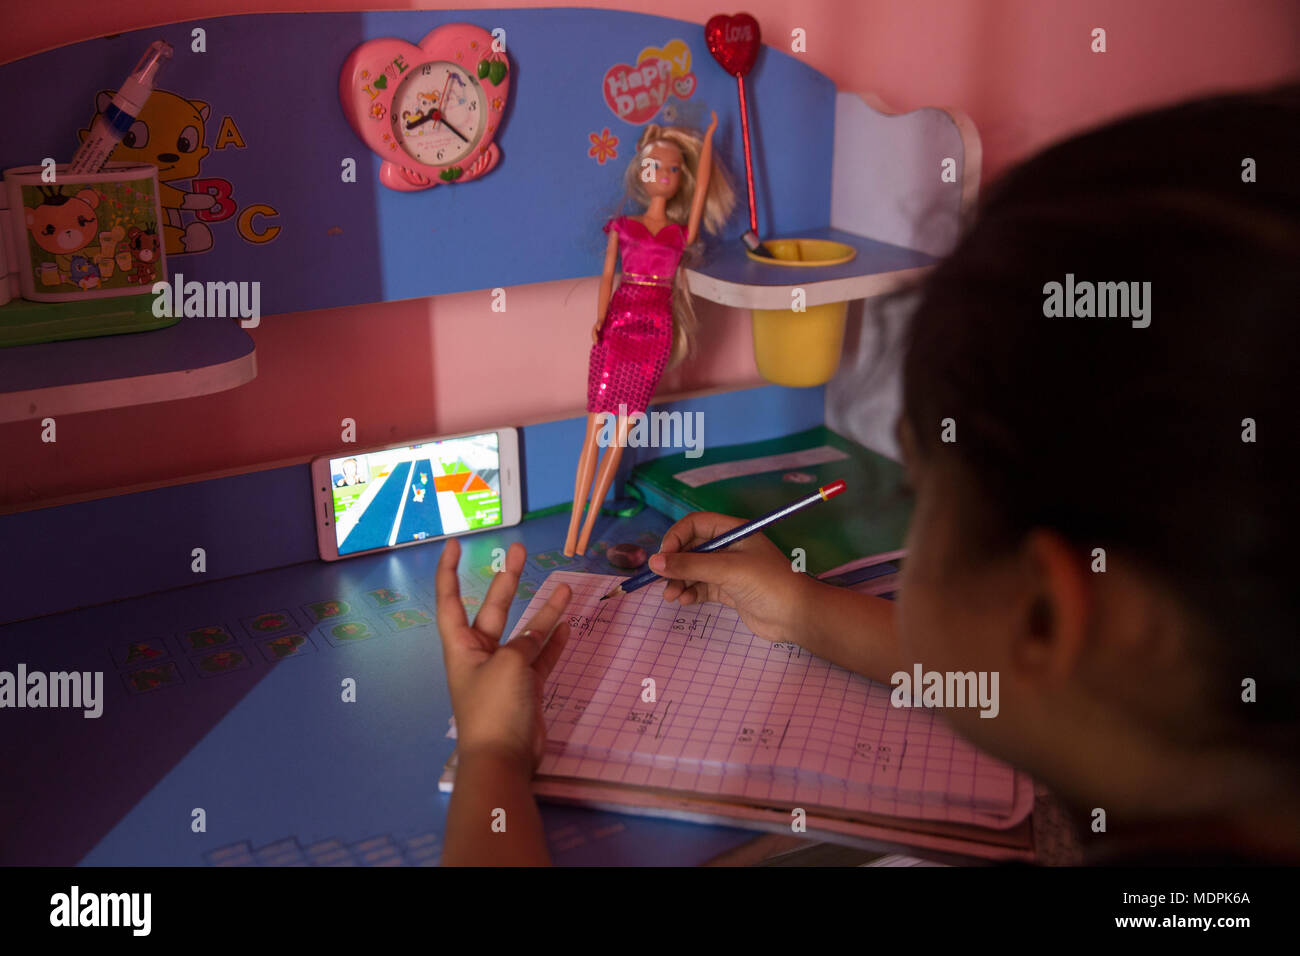 Little girl watching videos on smartphone while studying. - Stock Image